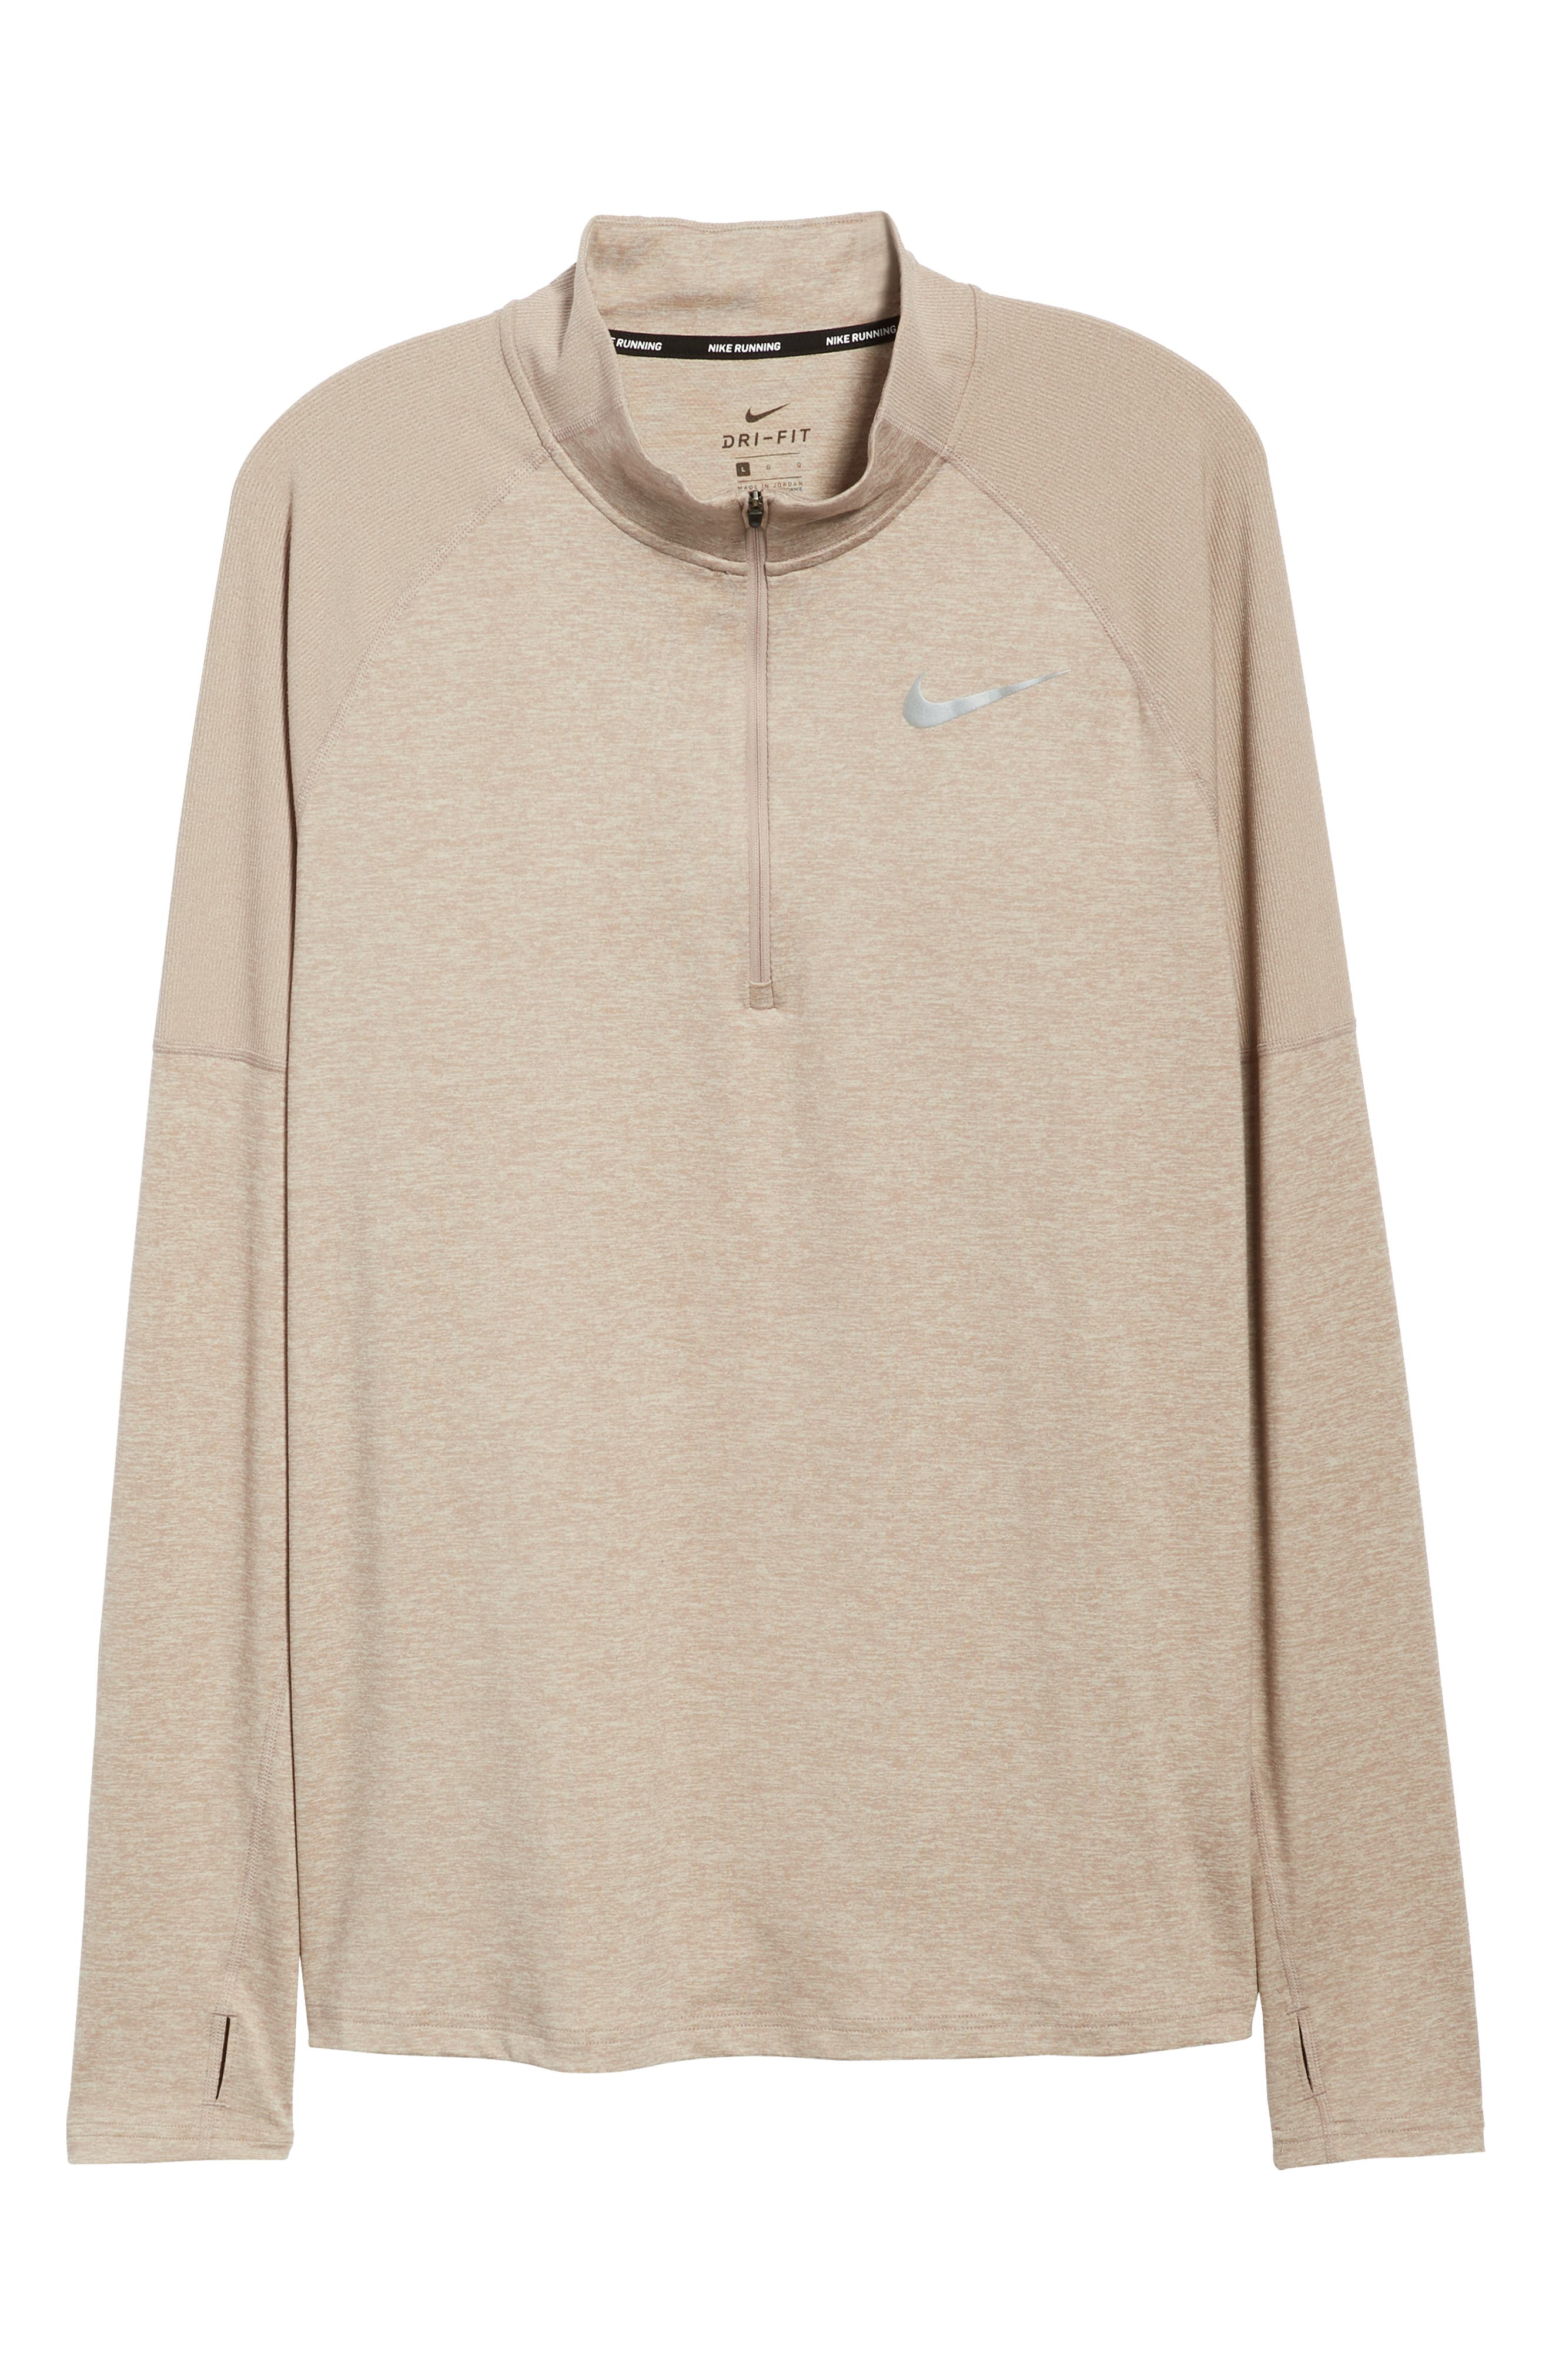 Element HZ 2.0 Performance Pullover,                             Alternate thumbnail 6, color,                             DIFFUSED TAUPE/ SAND/ HEATHER